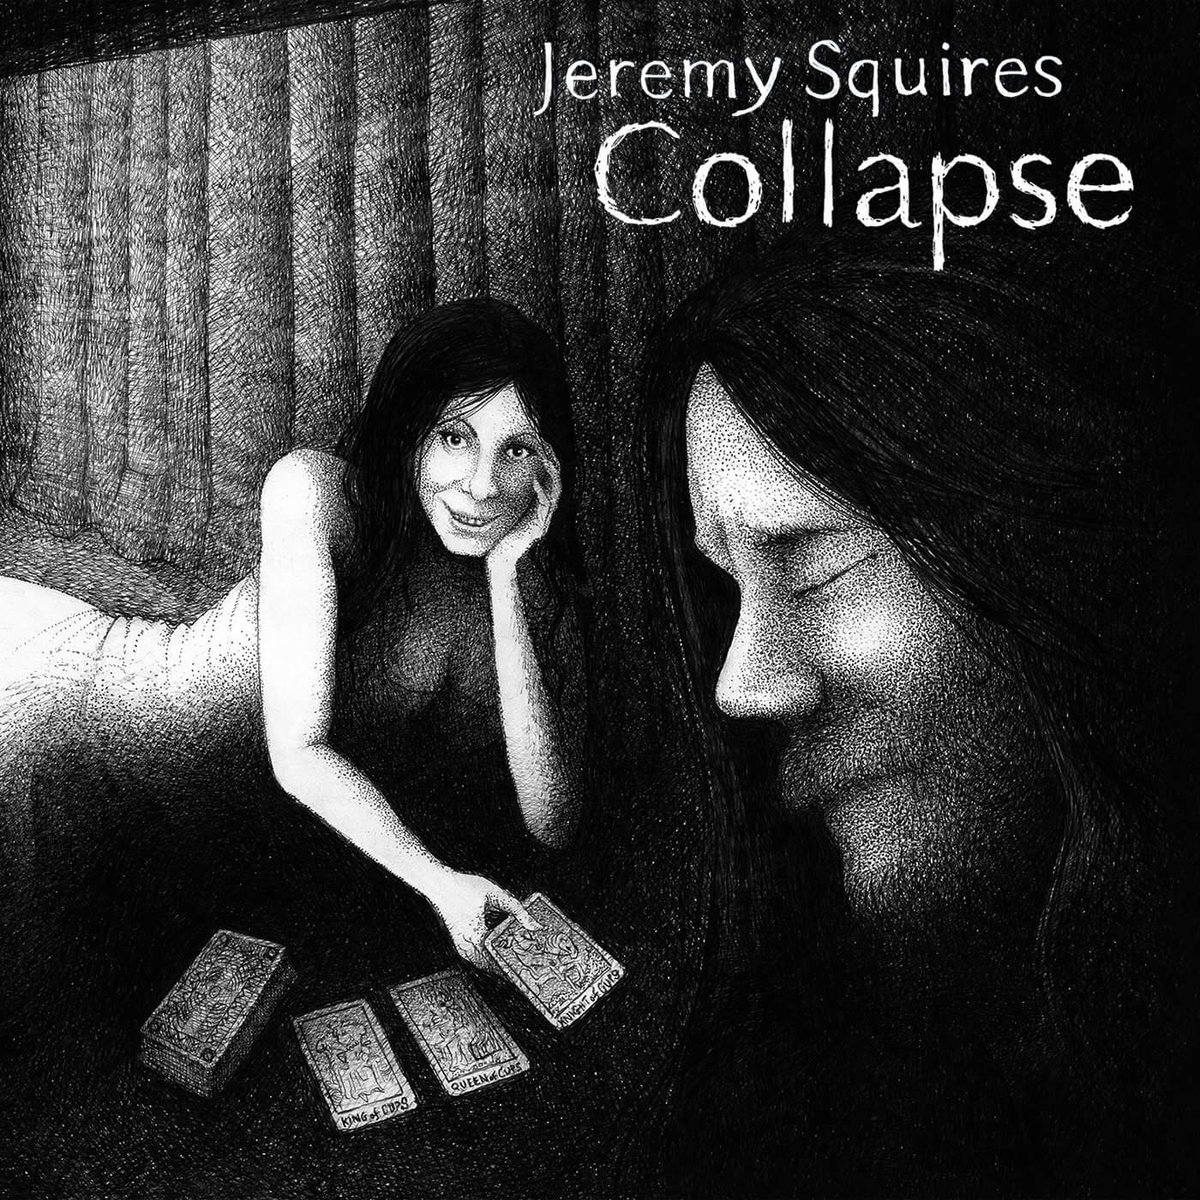 jeremy squires collapse album art